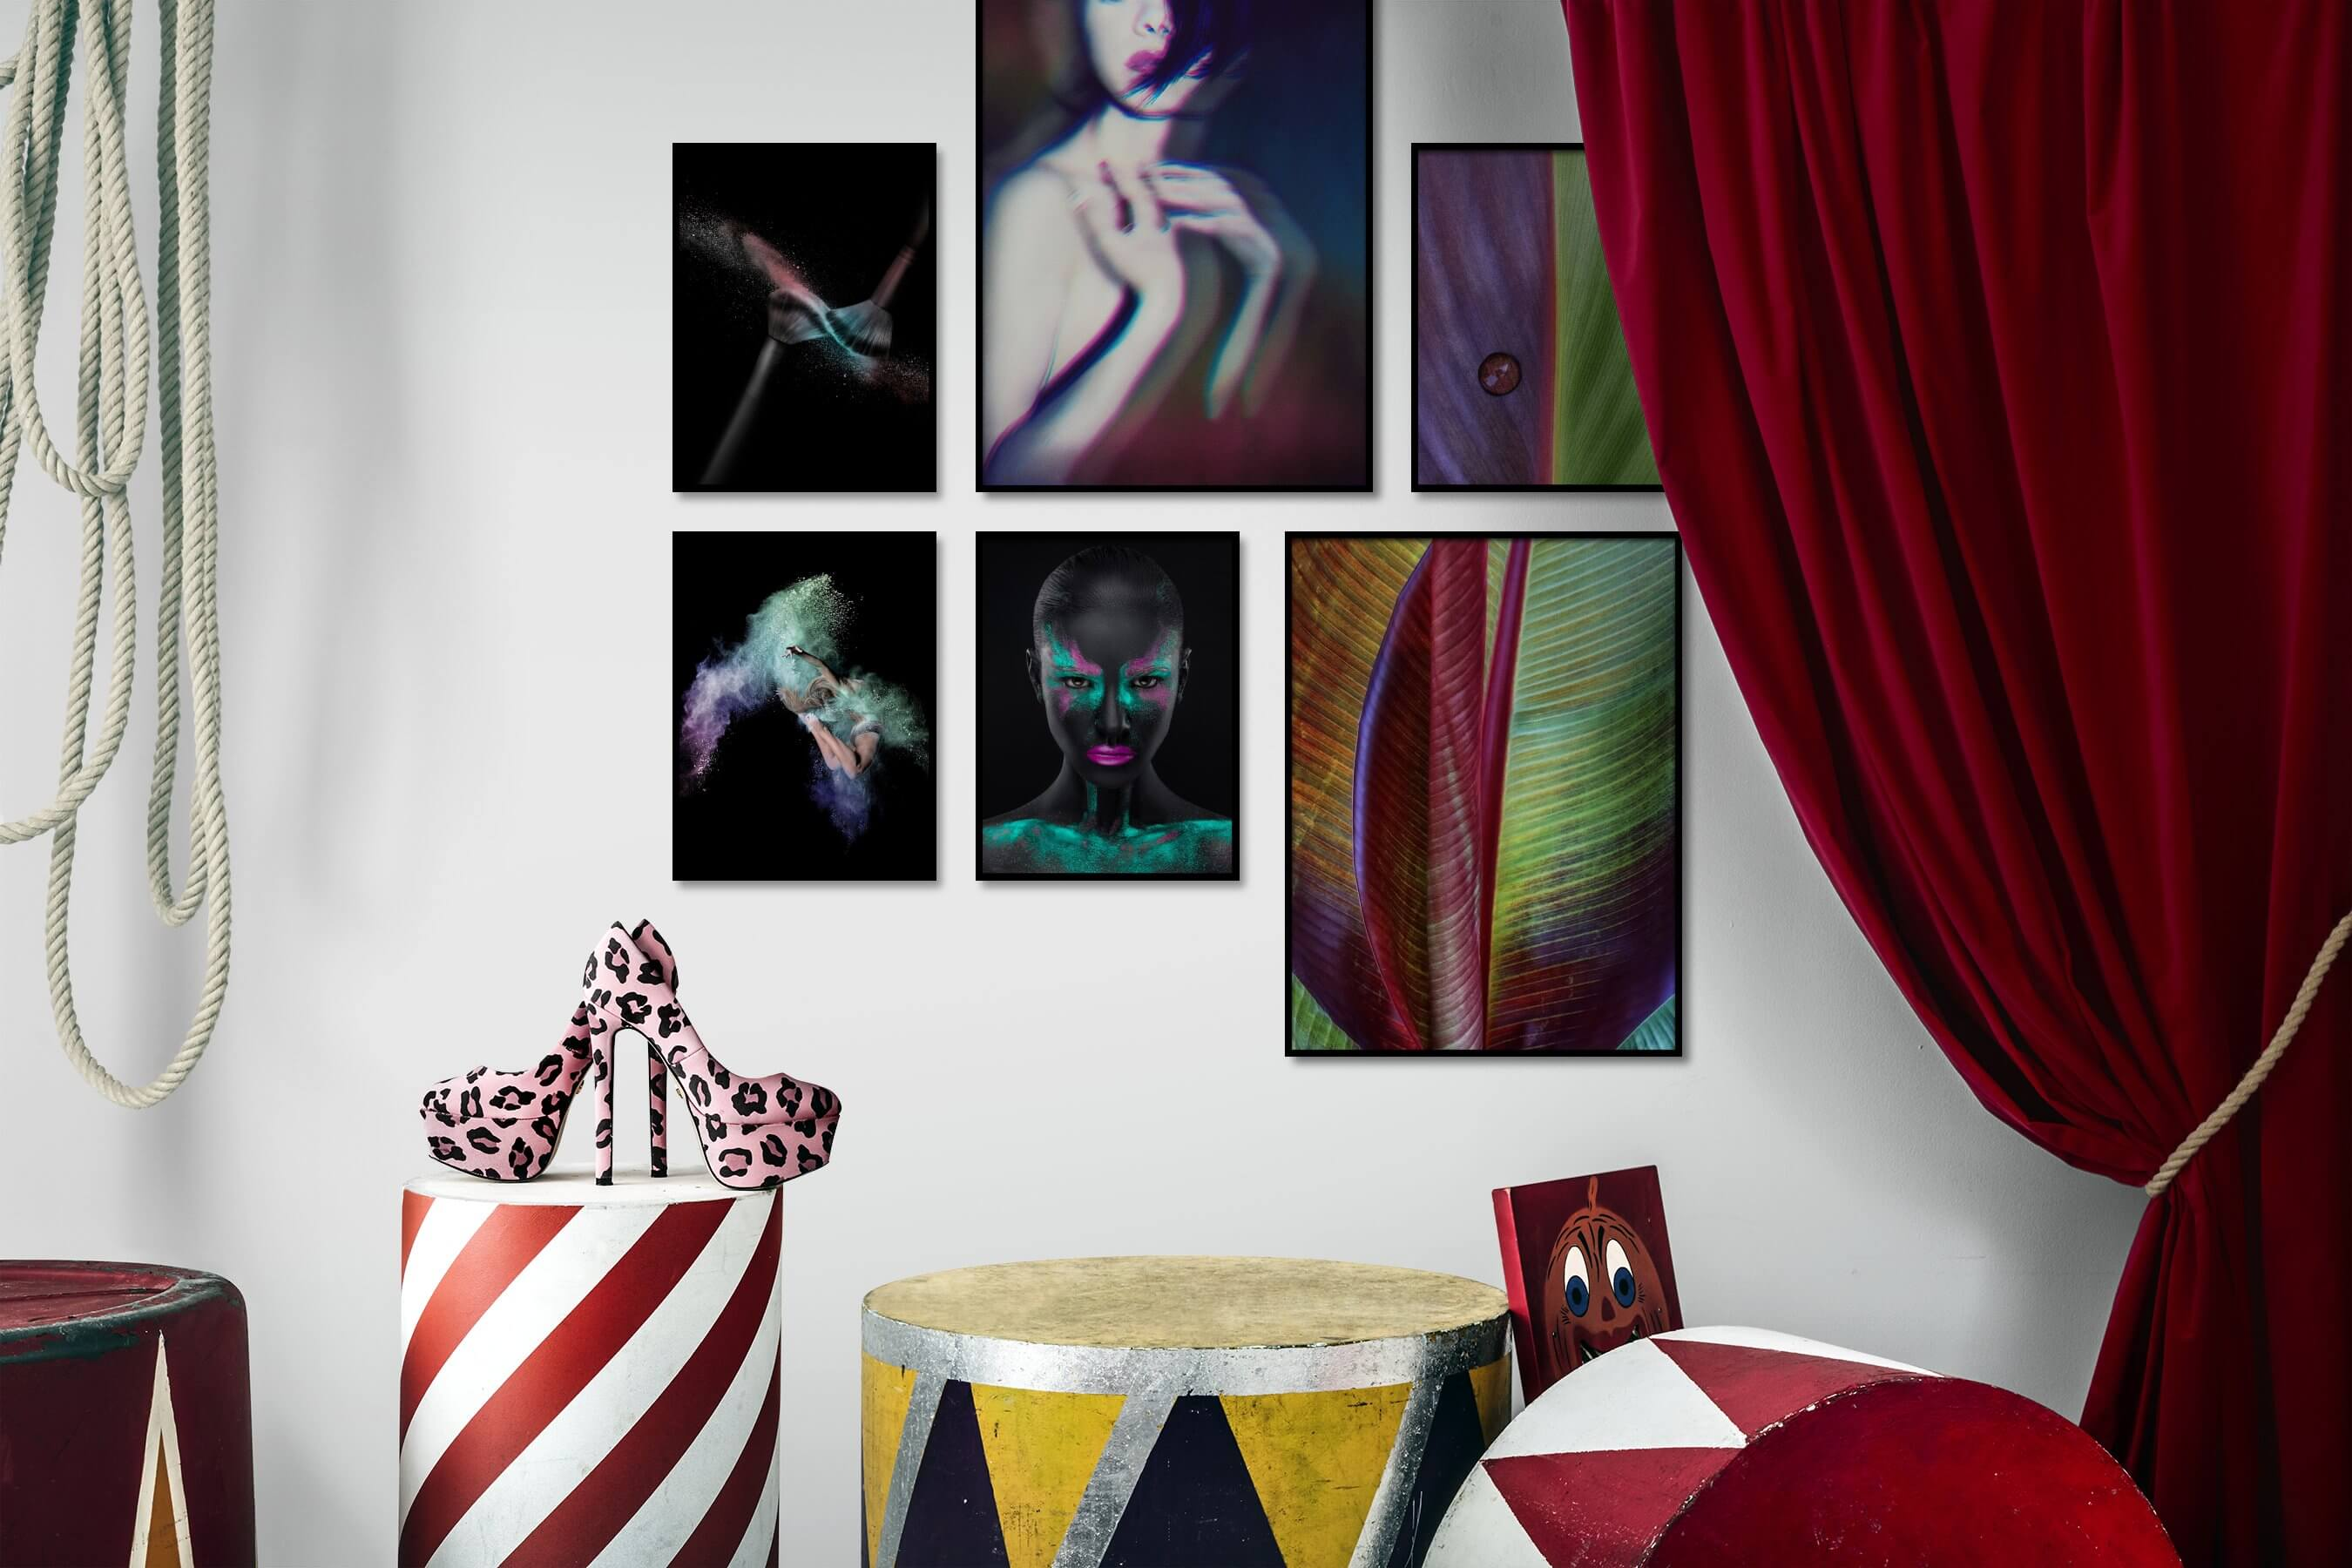 Gallery wall idea with six framed pictures arranged on a wall depicting Fashion & Beauty, Dark Tones, For the Moderate, Colorful, For the Maximalist, and Flowers & Plants